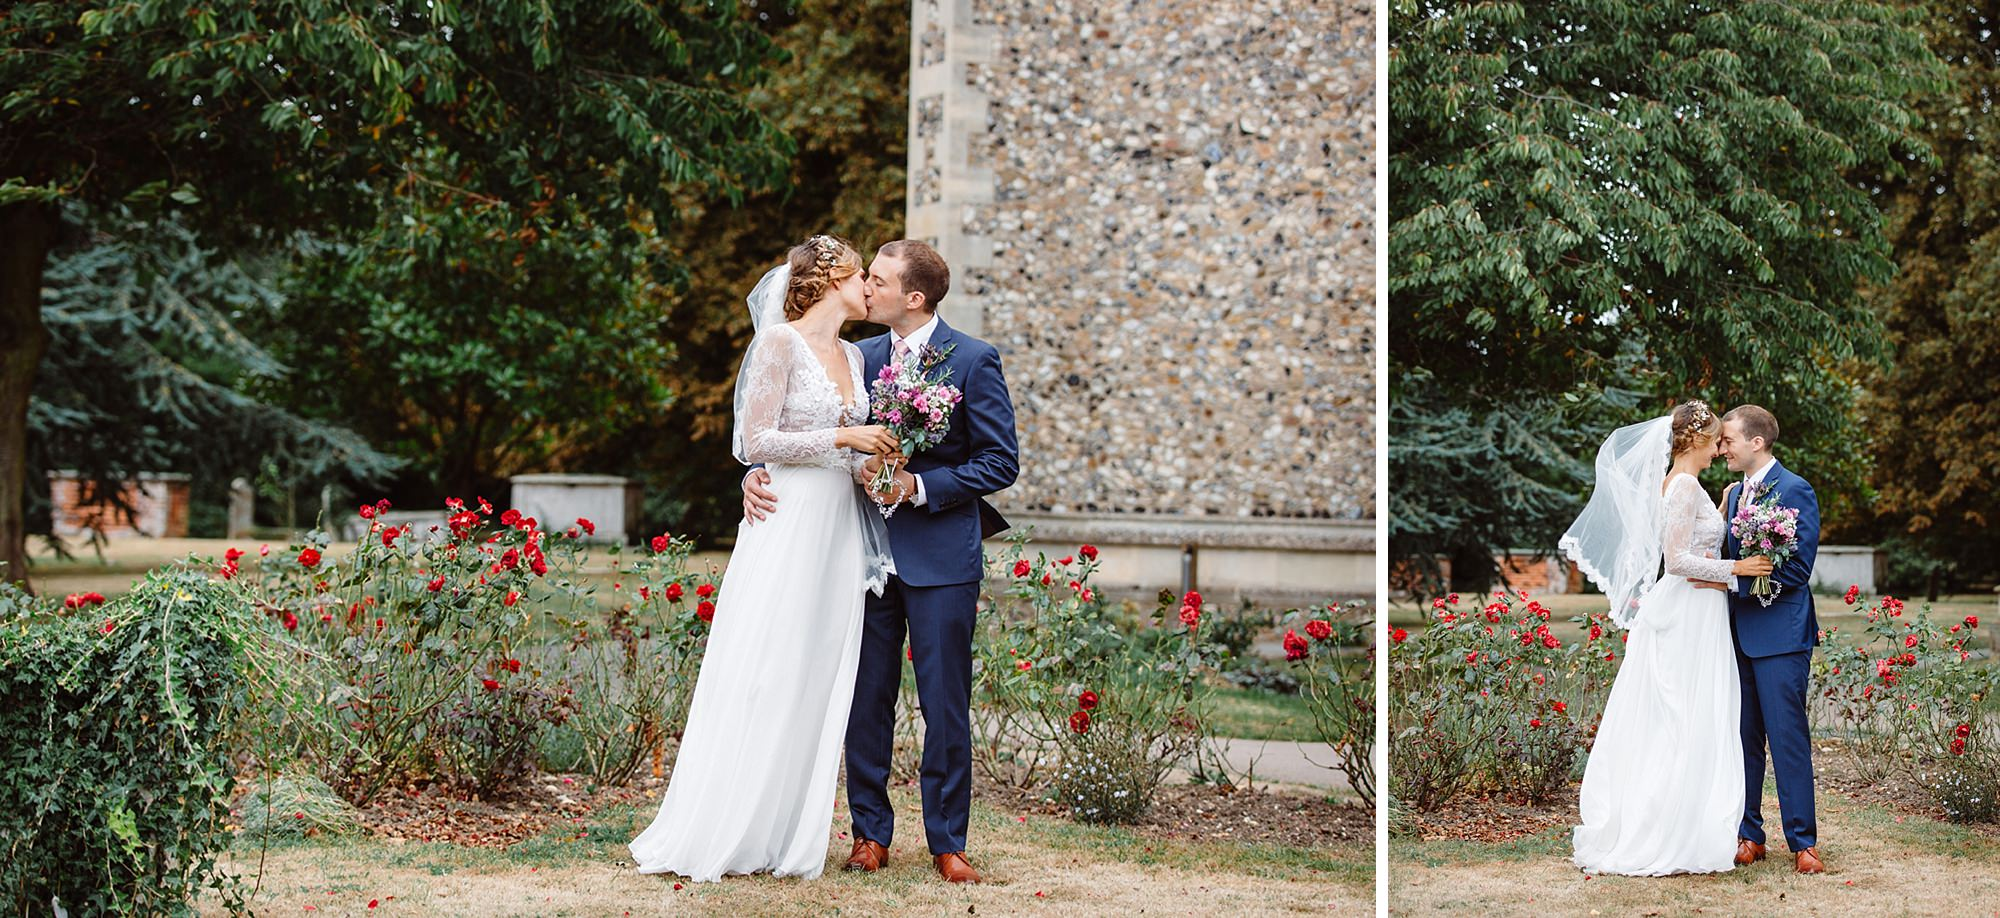 Marks Hall Estate wedding photography bride and room with roses in church grounds